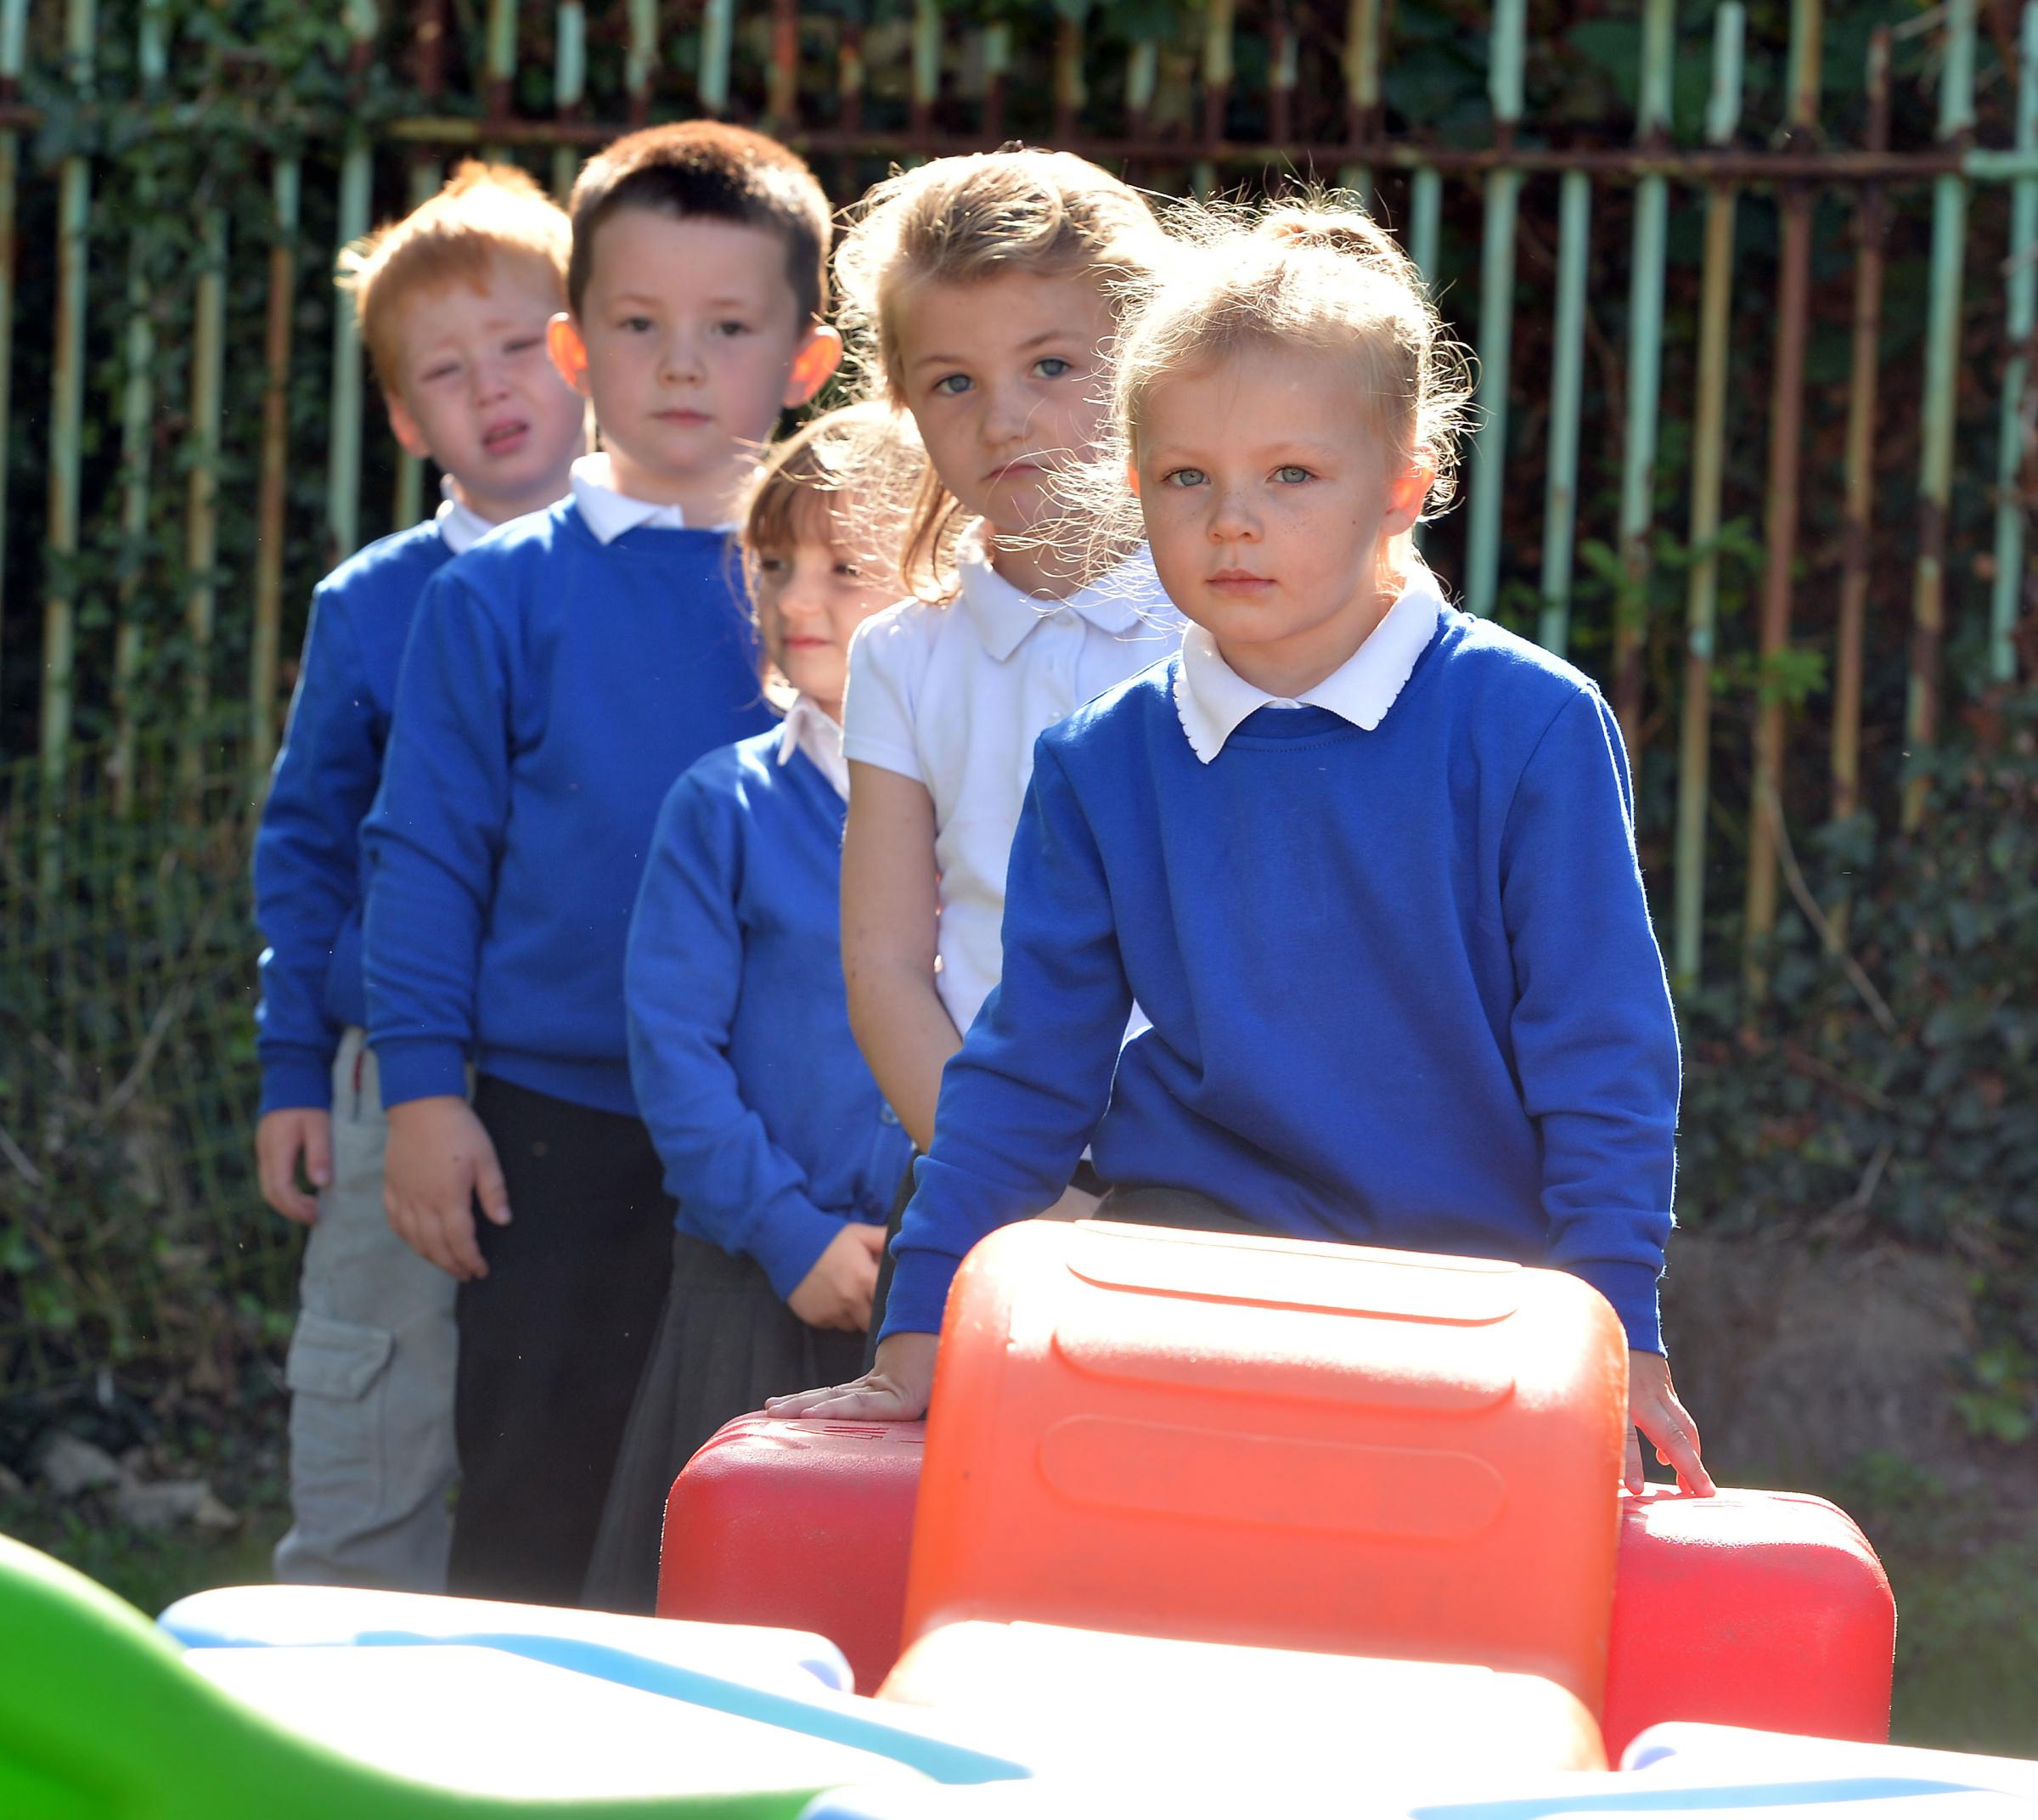 SCHOOL OF THE WEEK: Taking learning outside the classroom at Somerton Primary